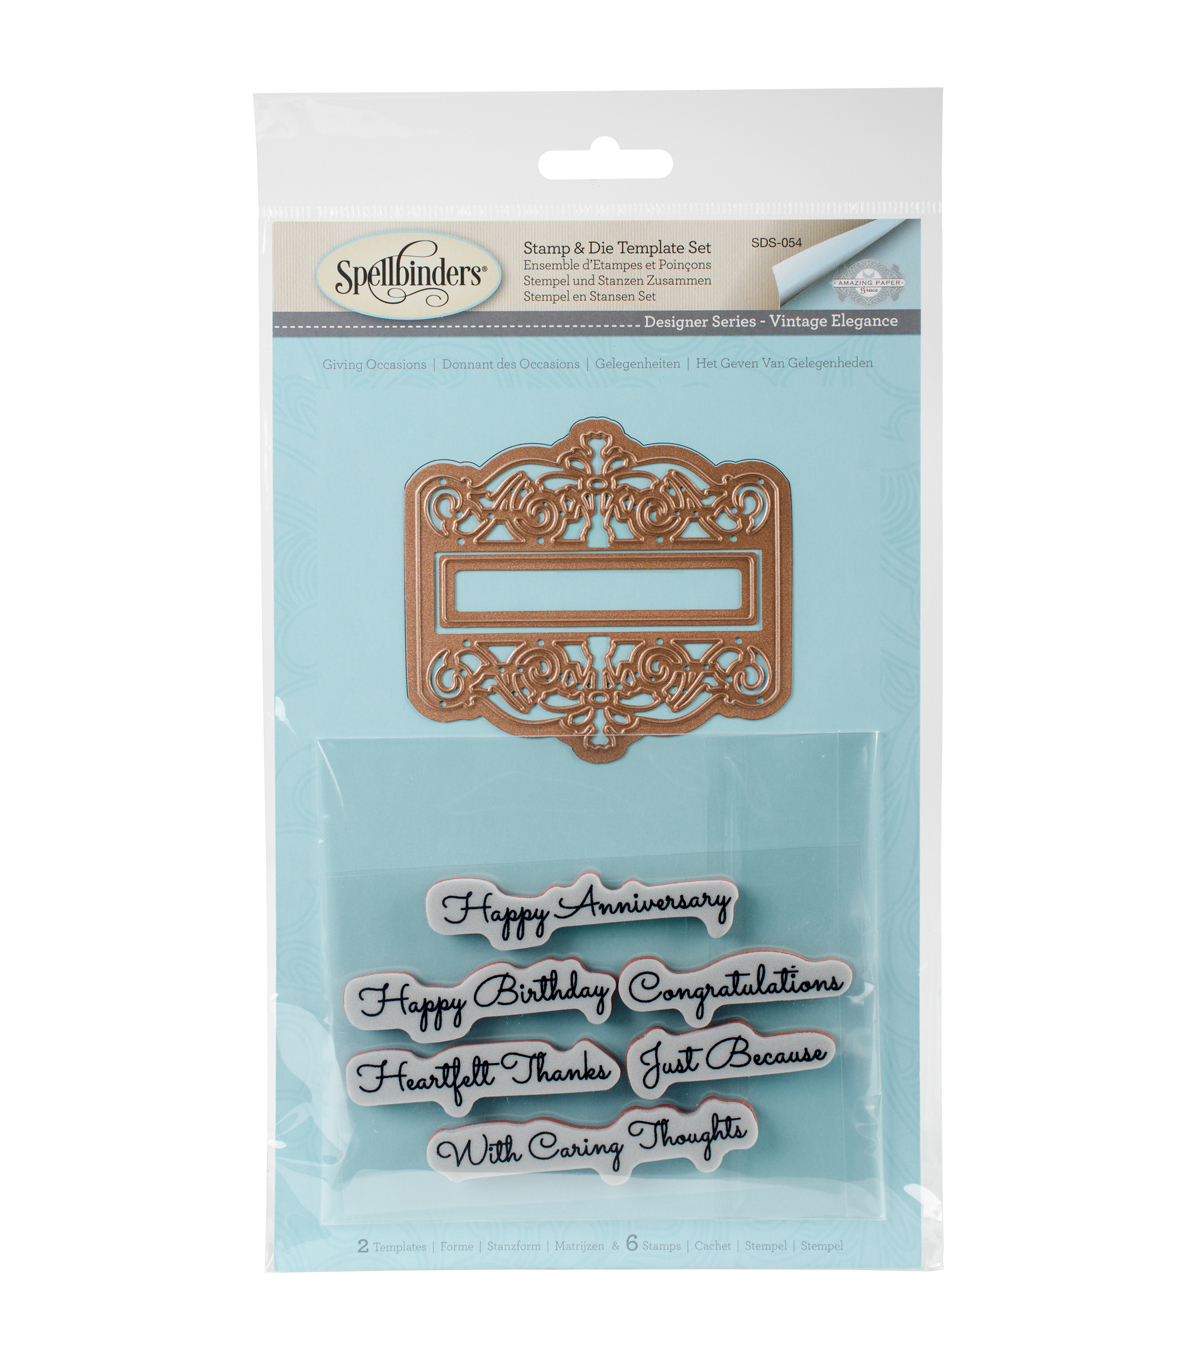 Spellbinders Amazing Paper Grace Stamp & Die Set-Giving Occasions